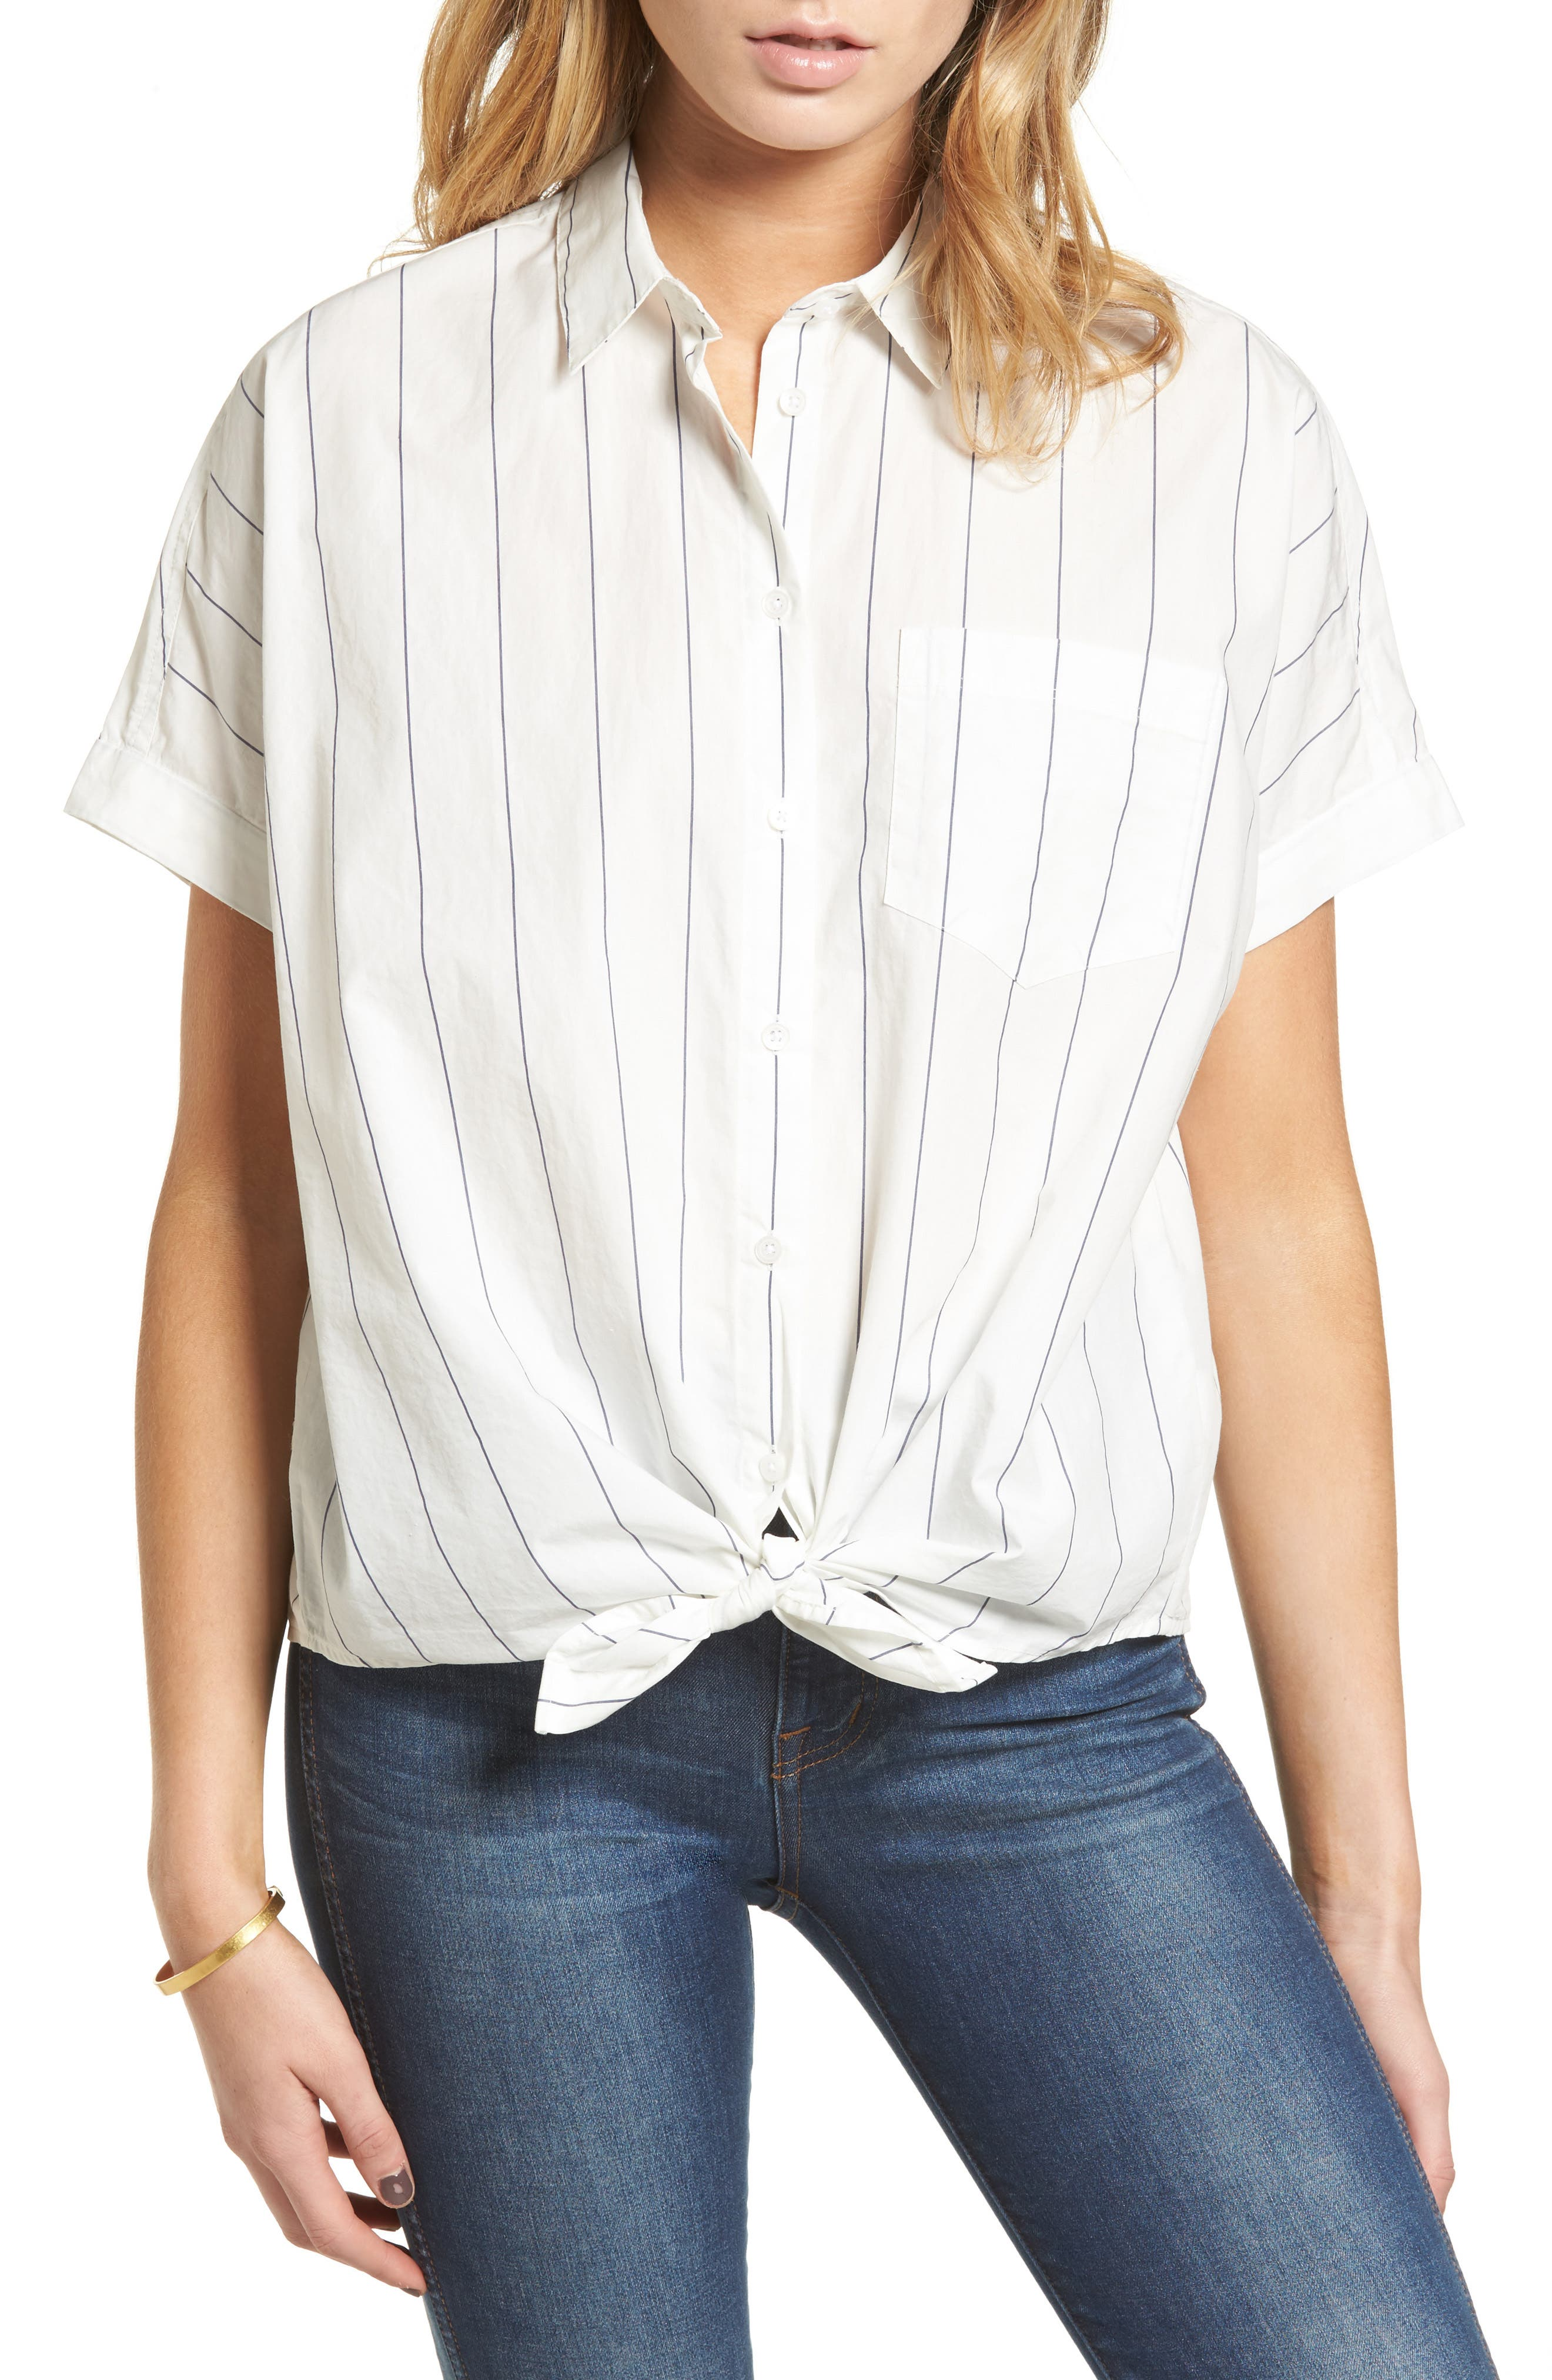 Main Image - Madewell Tie Front Shirt